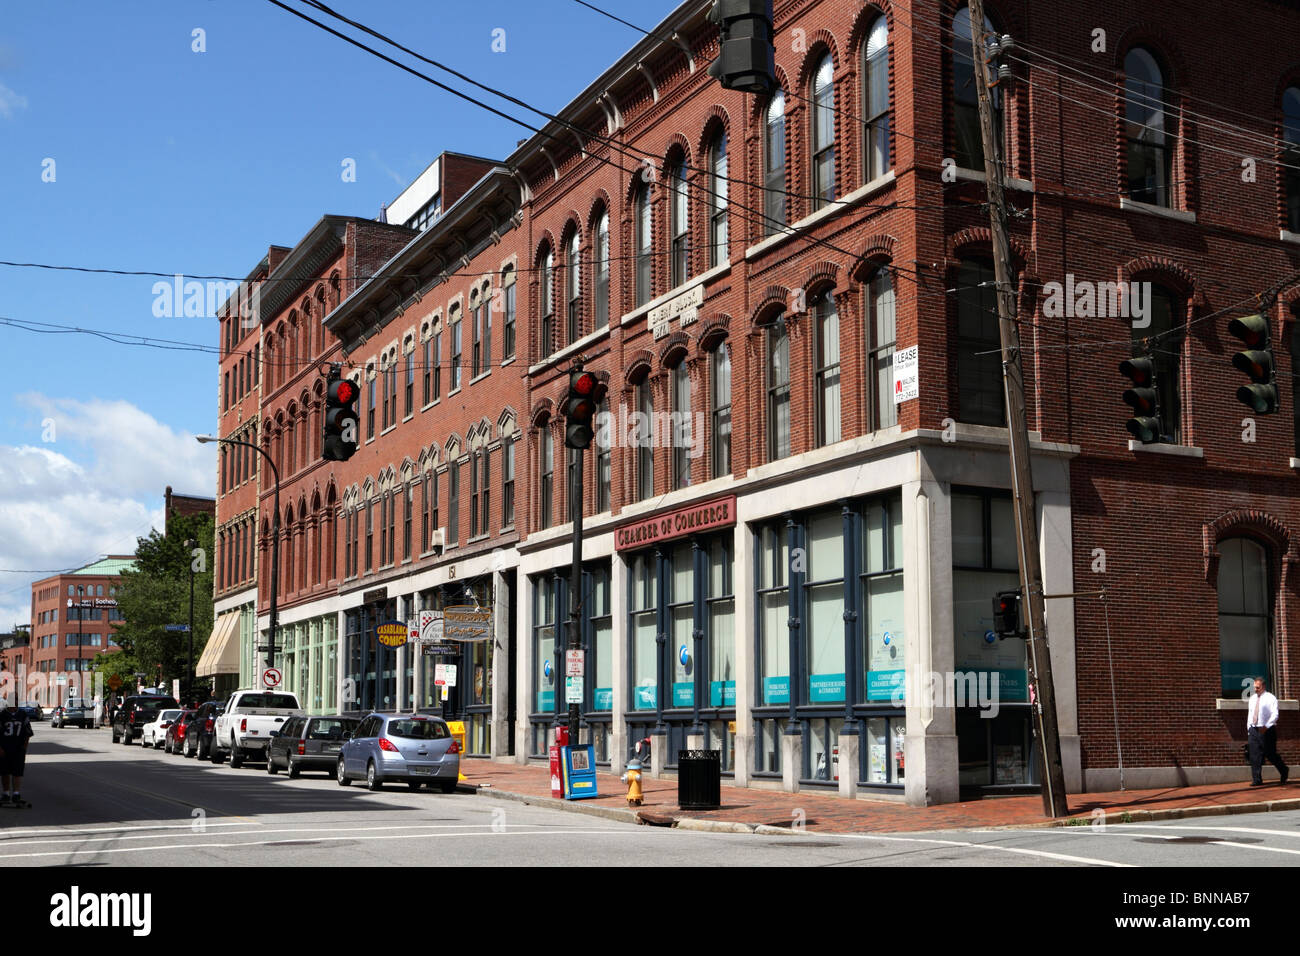 Building housing the Portland Chamber of Commerce, Portland, Maine, USA. - Stock Image